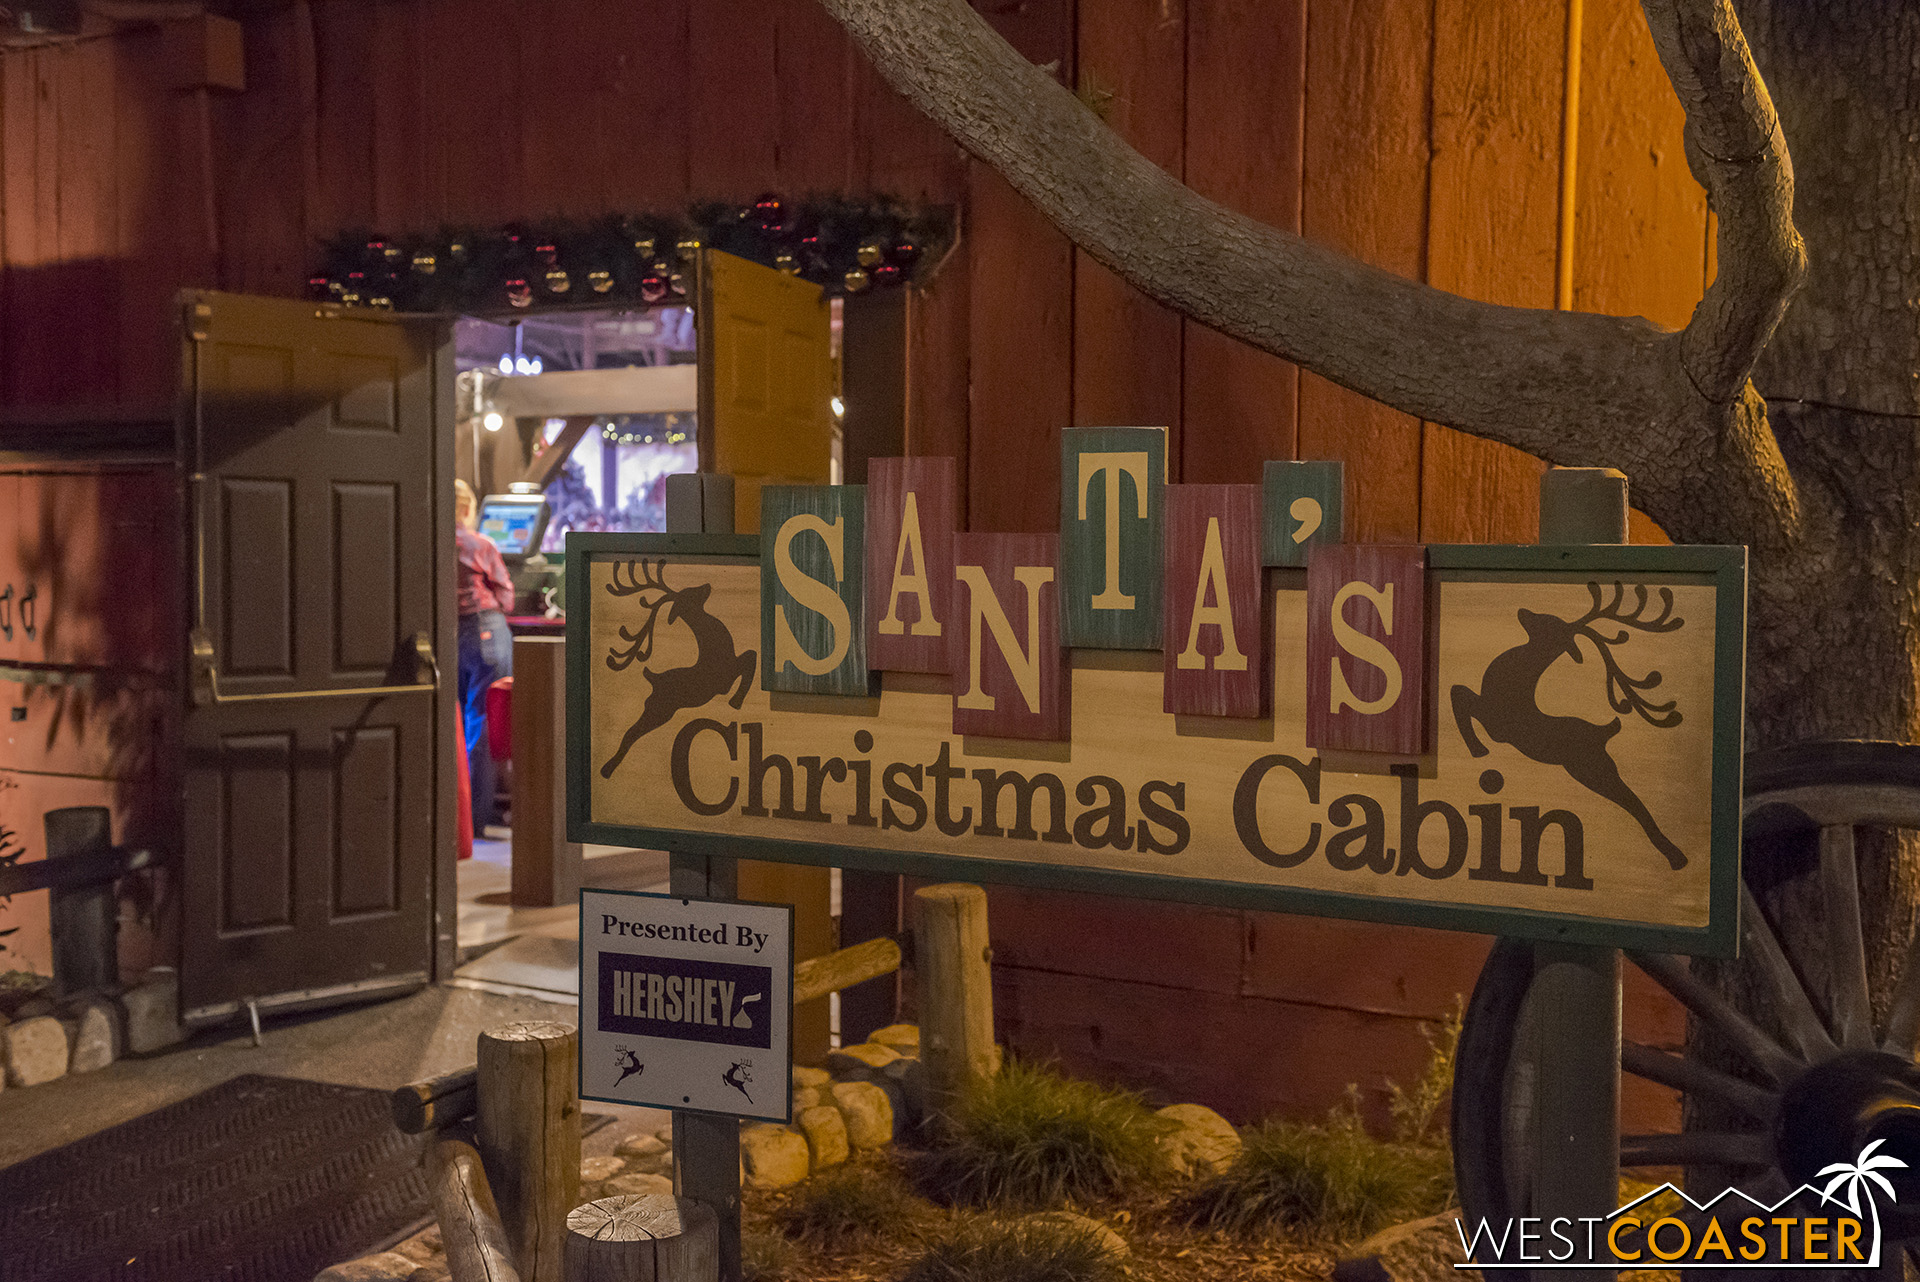 Santa's Christmas Cabin is back and full of sweets and treats.